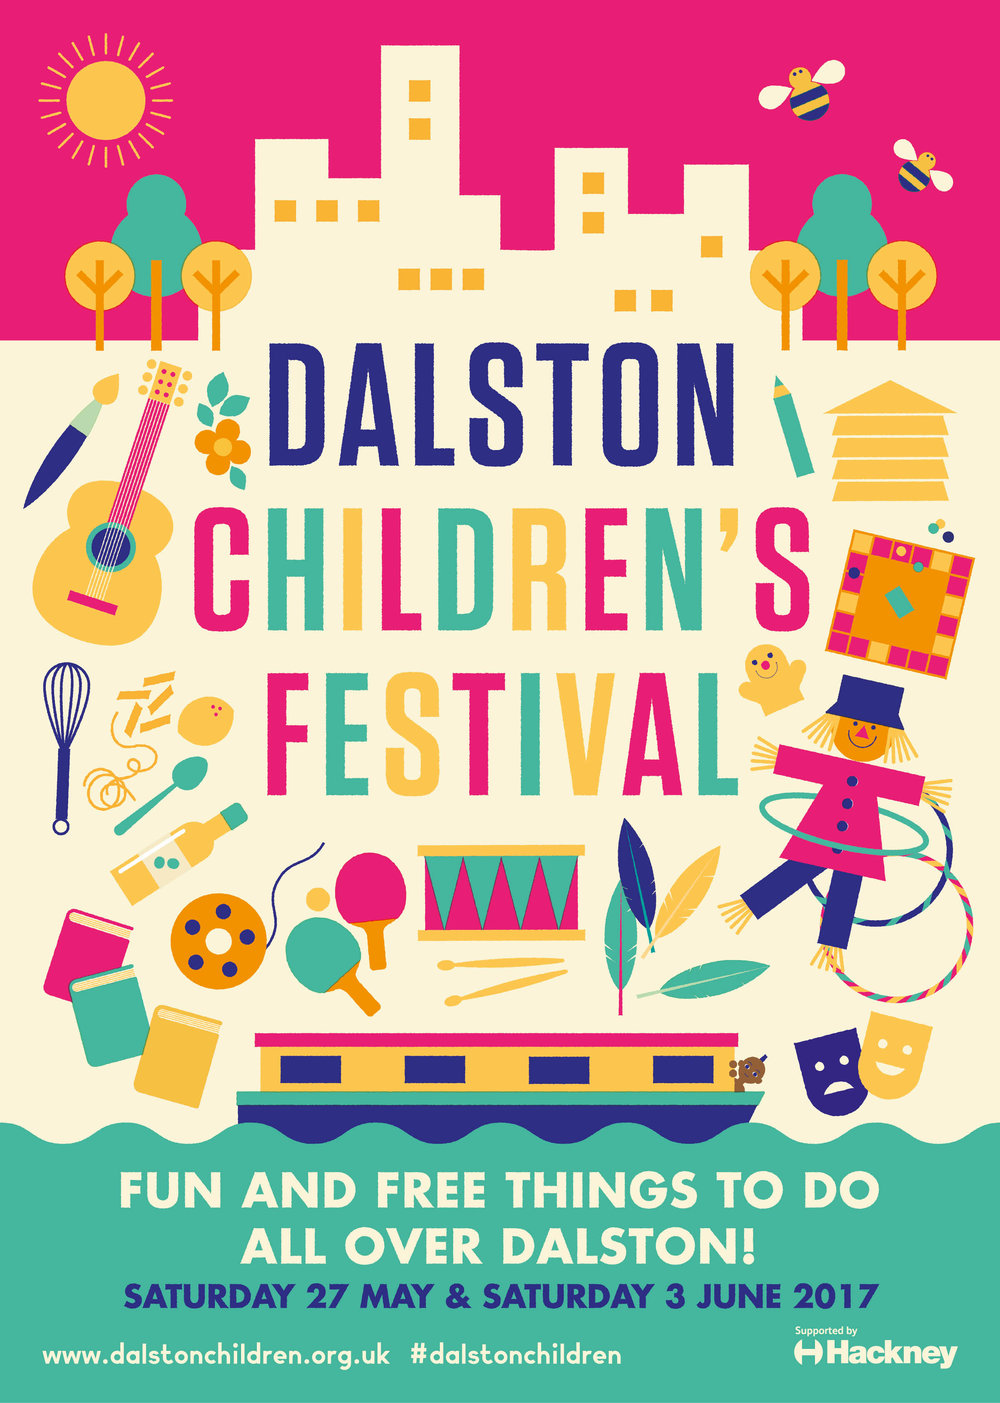 Dalston Children's Festival-poster_2017_WEB version.jpg